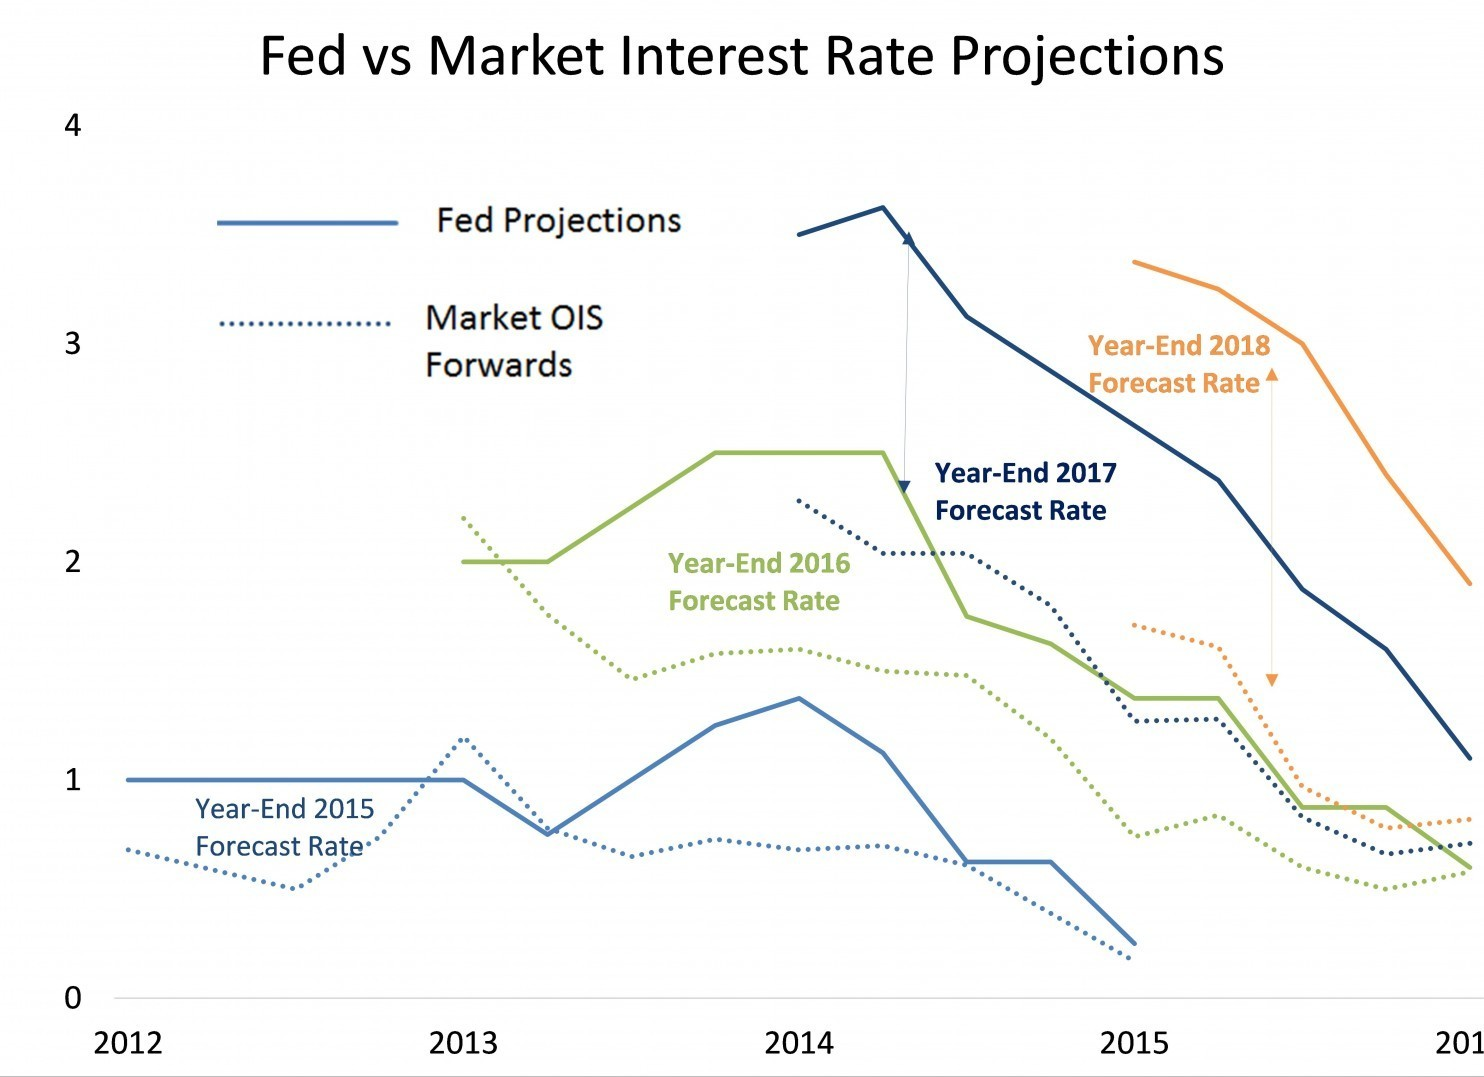 Fed versus market interest rate projections 2012-2018